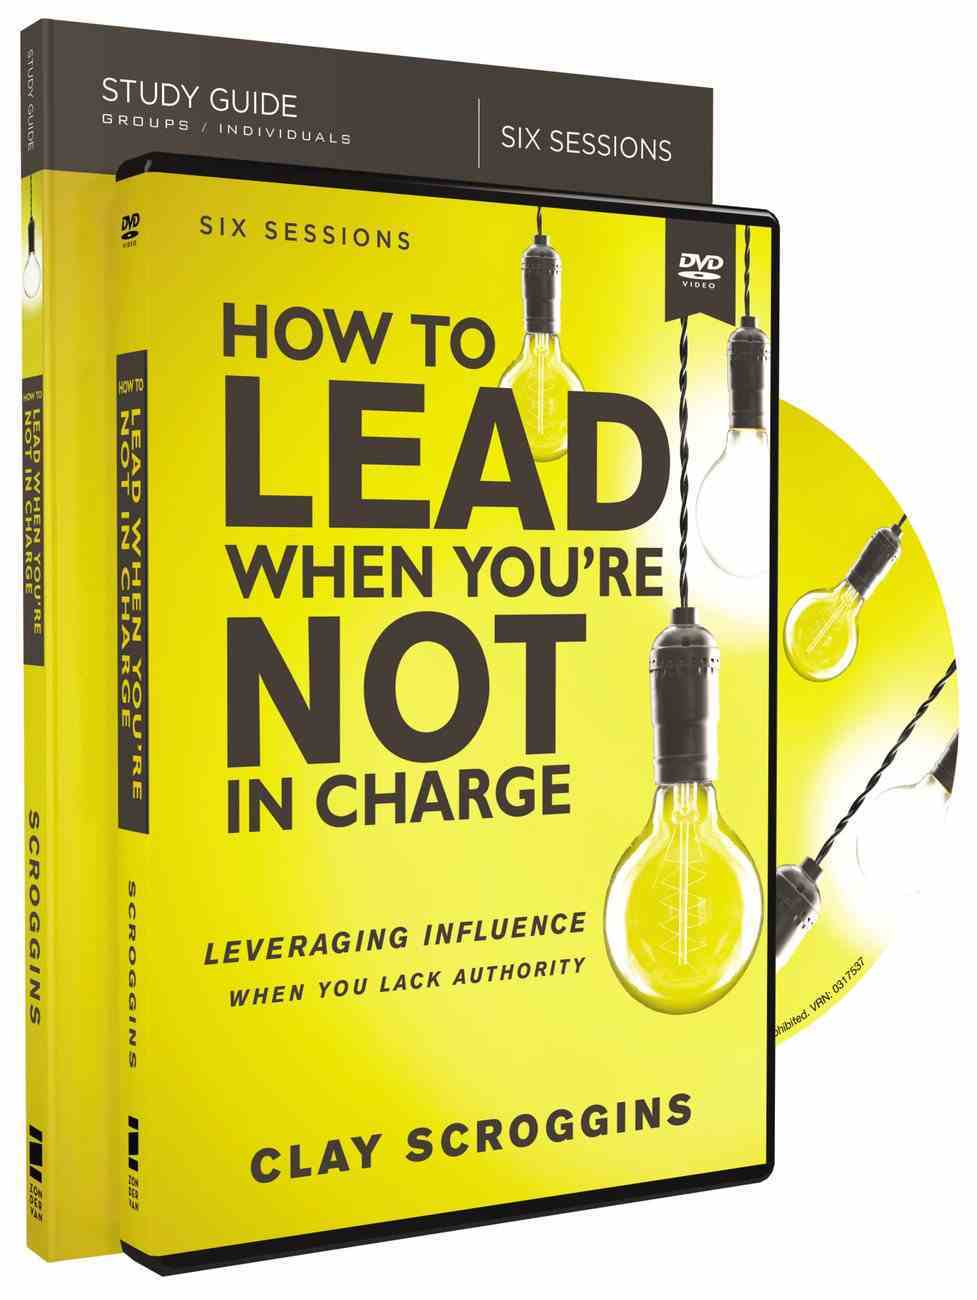 How to Lead When You're Not in Charge: Leveraging Influence When You Lack Authority (Study Guide With Dvd) Pack